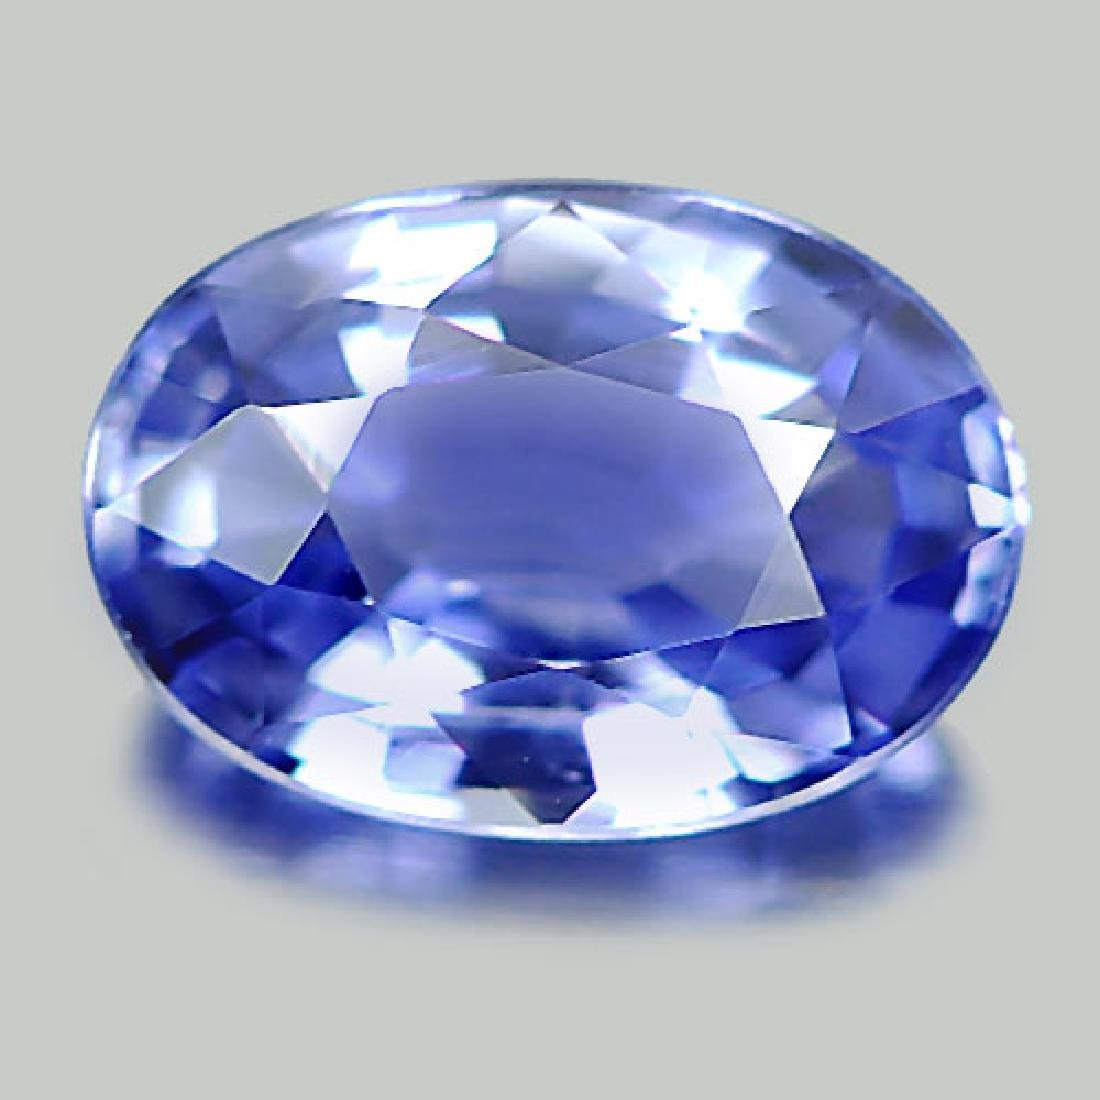 Delightful 1.06 Ct. Natural Blue Sapphire Oval Shape